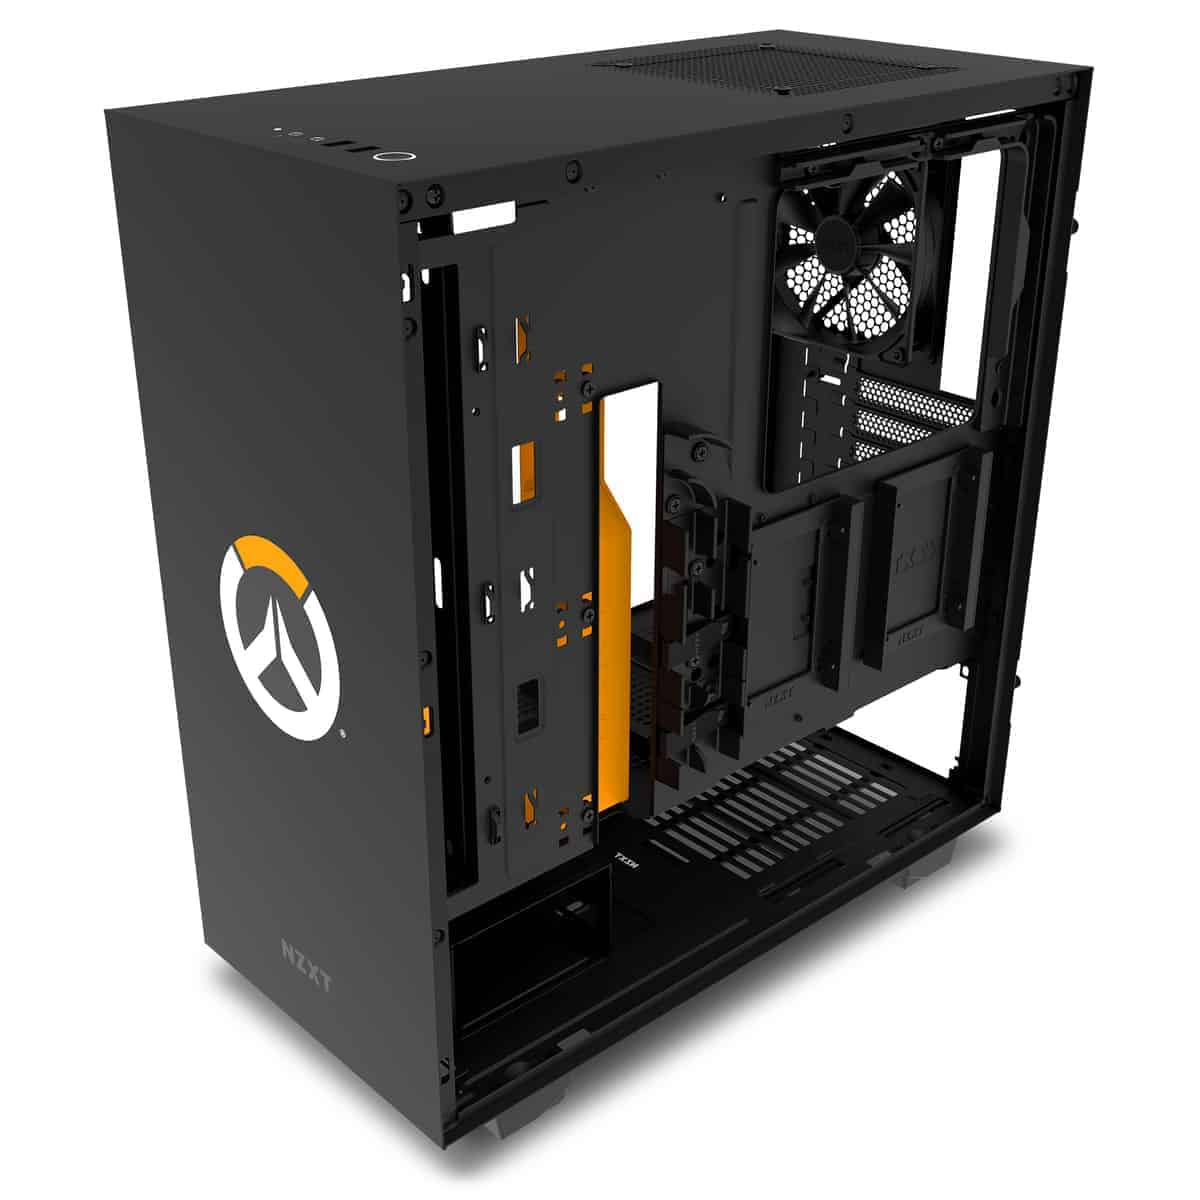 Nzxt Announces The First Overwatch Themed Pc Chassis The